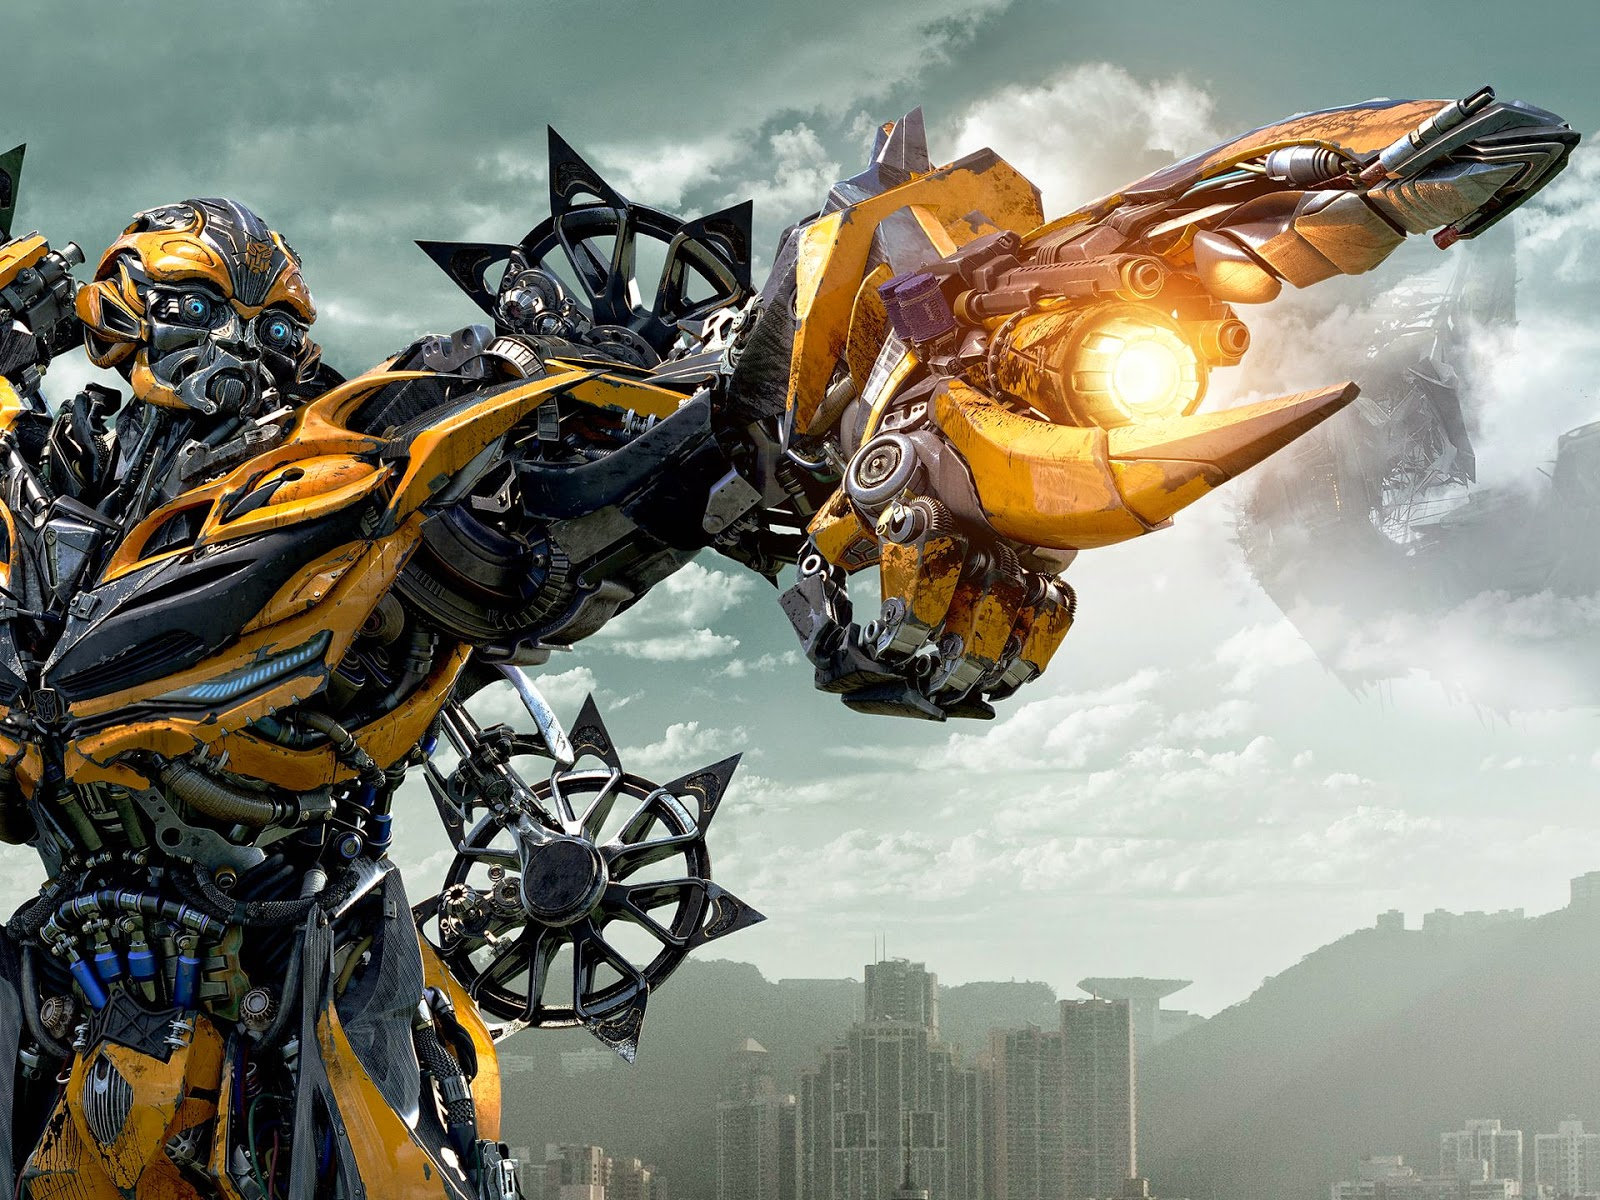 Foto Bumblebee Transformers 4 Ages of Extinction Autobots